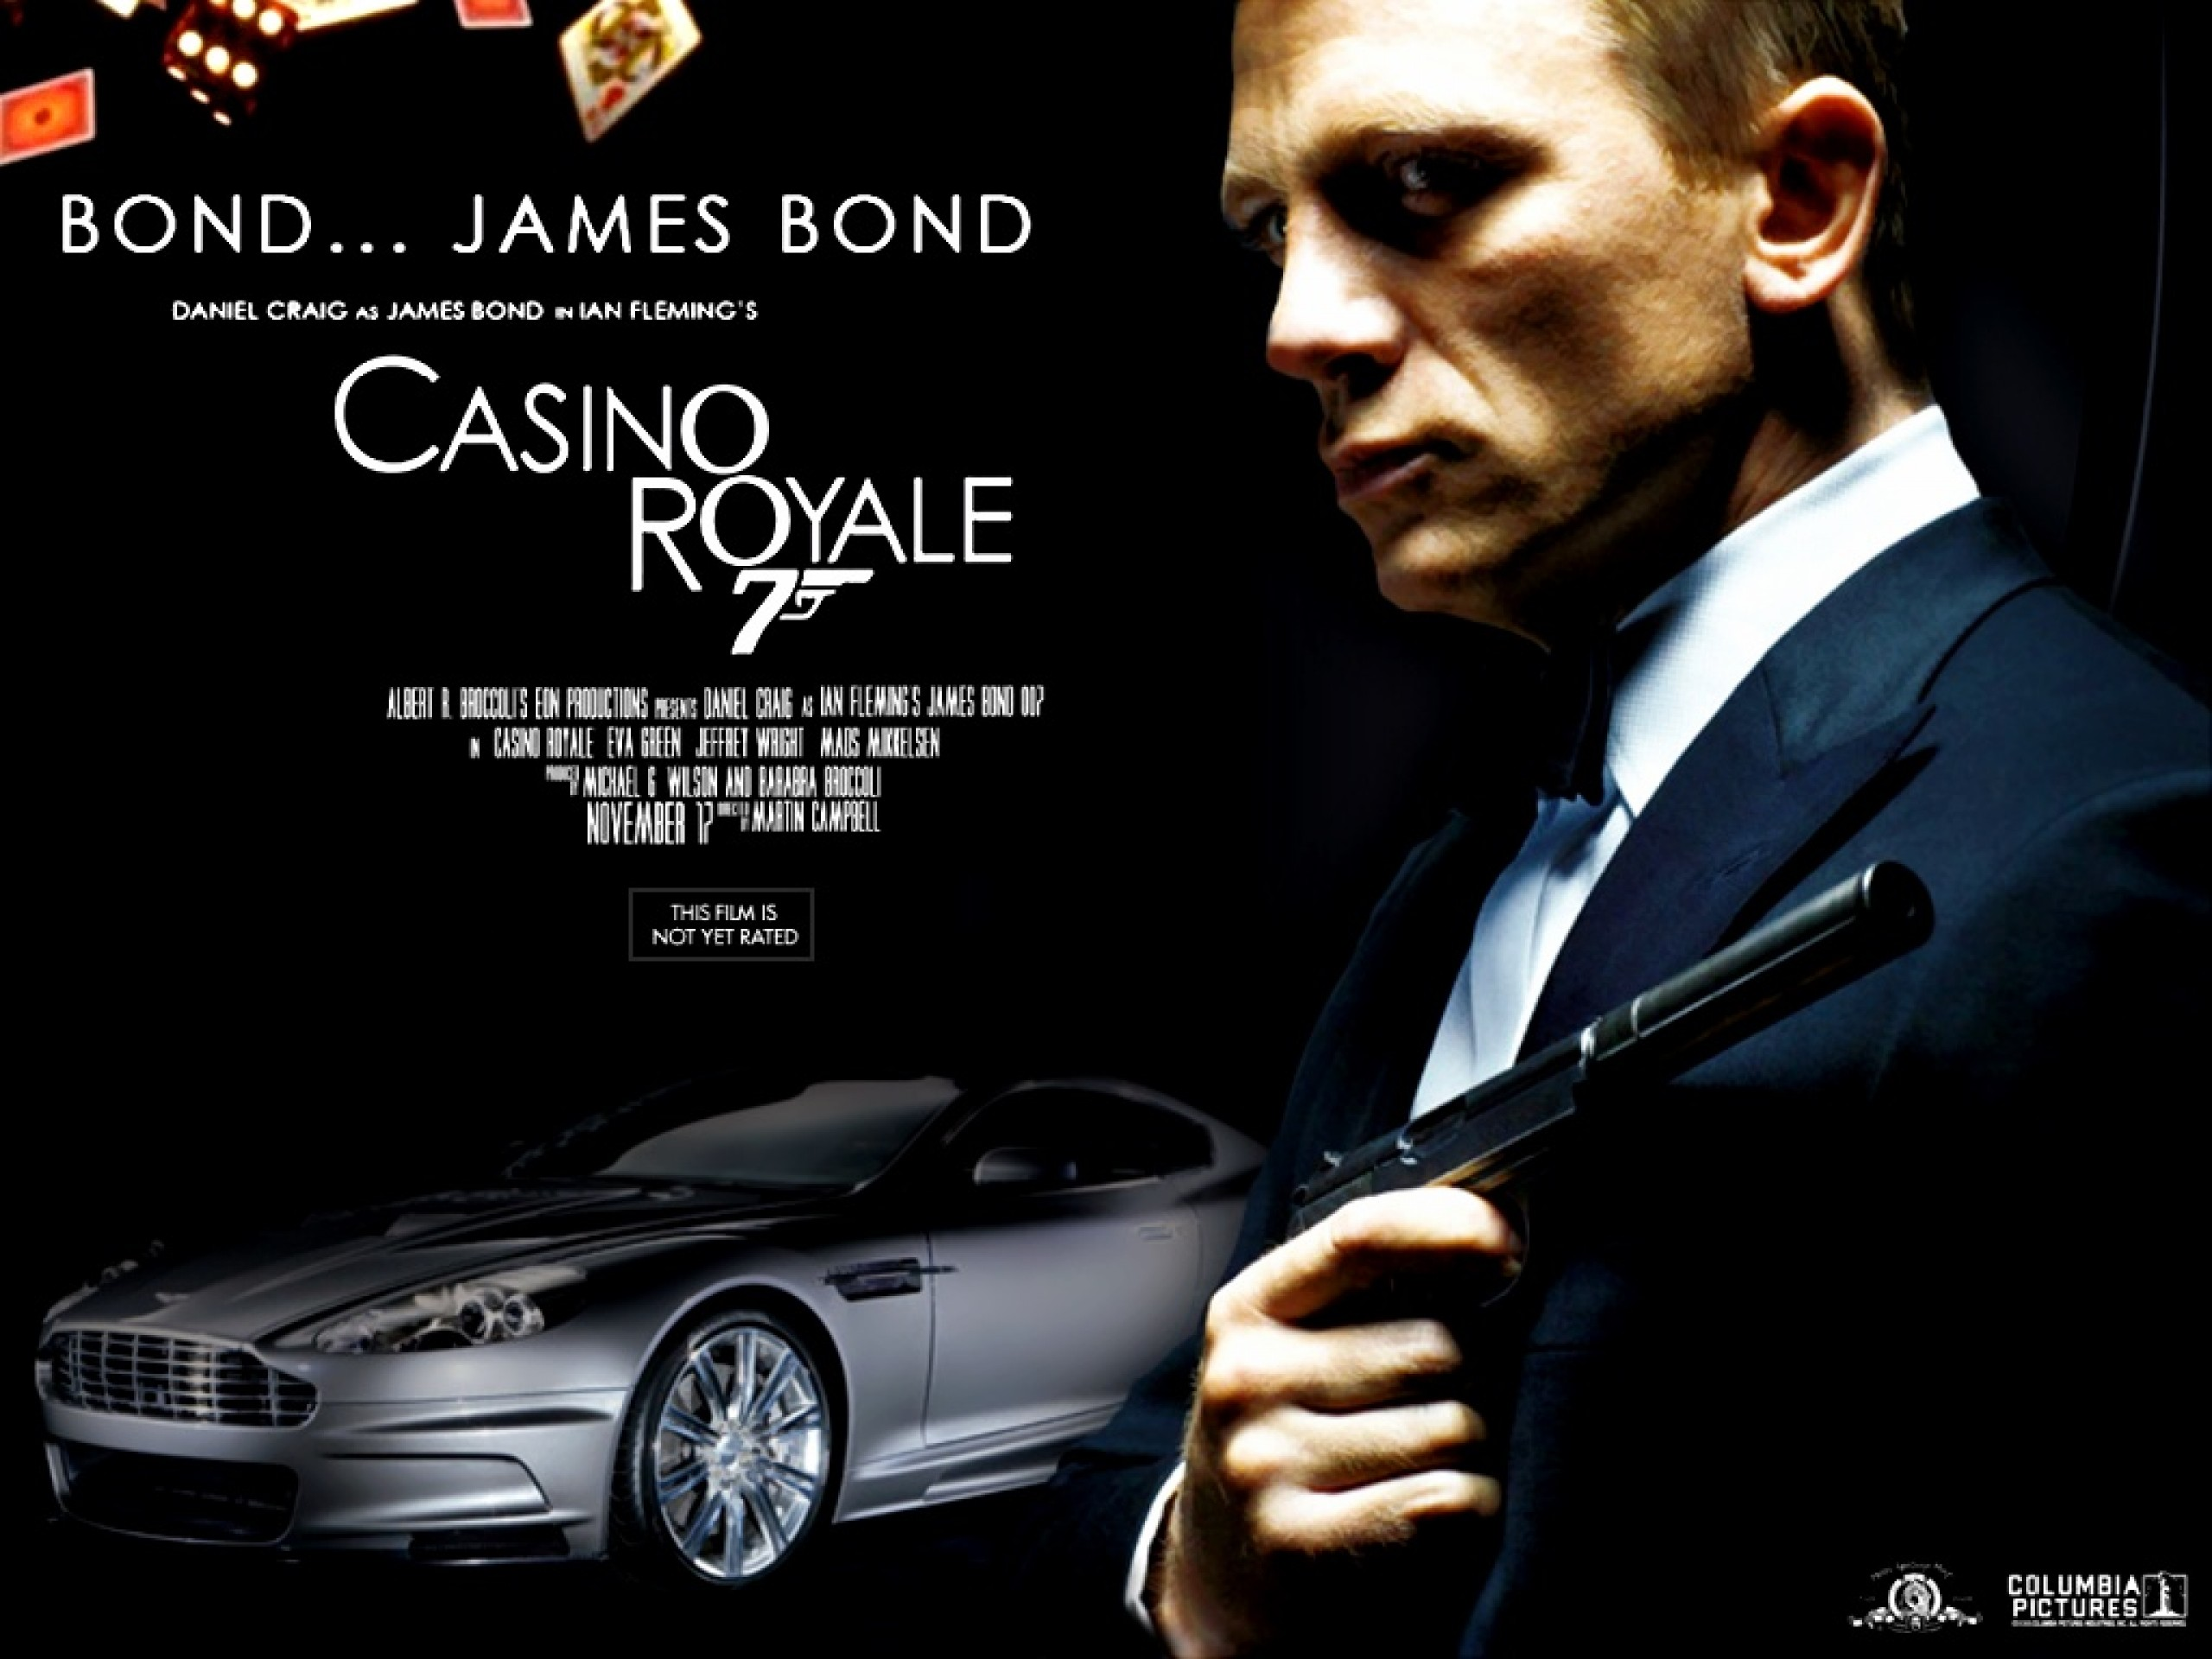 casino royale online movie free twist game login